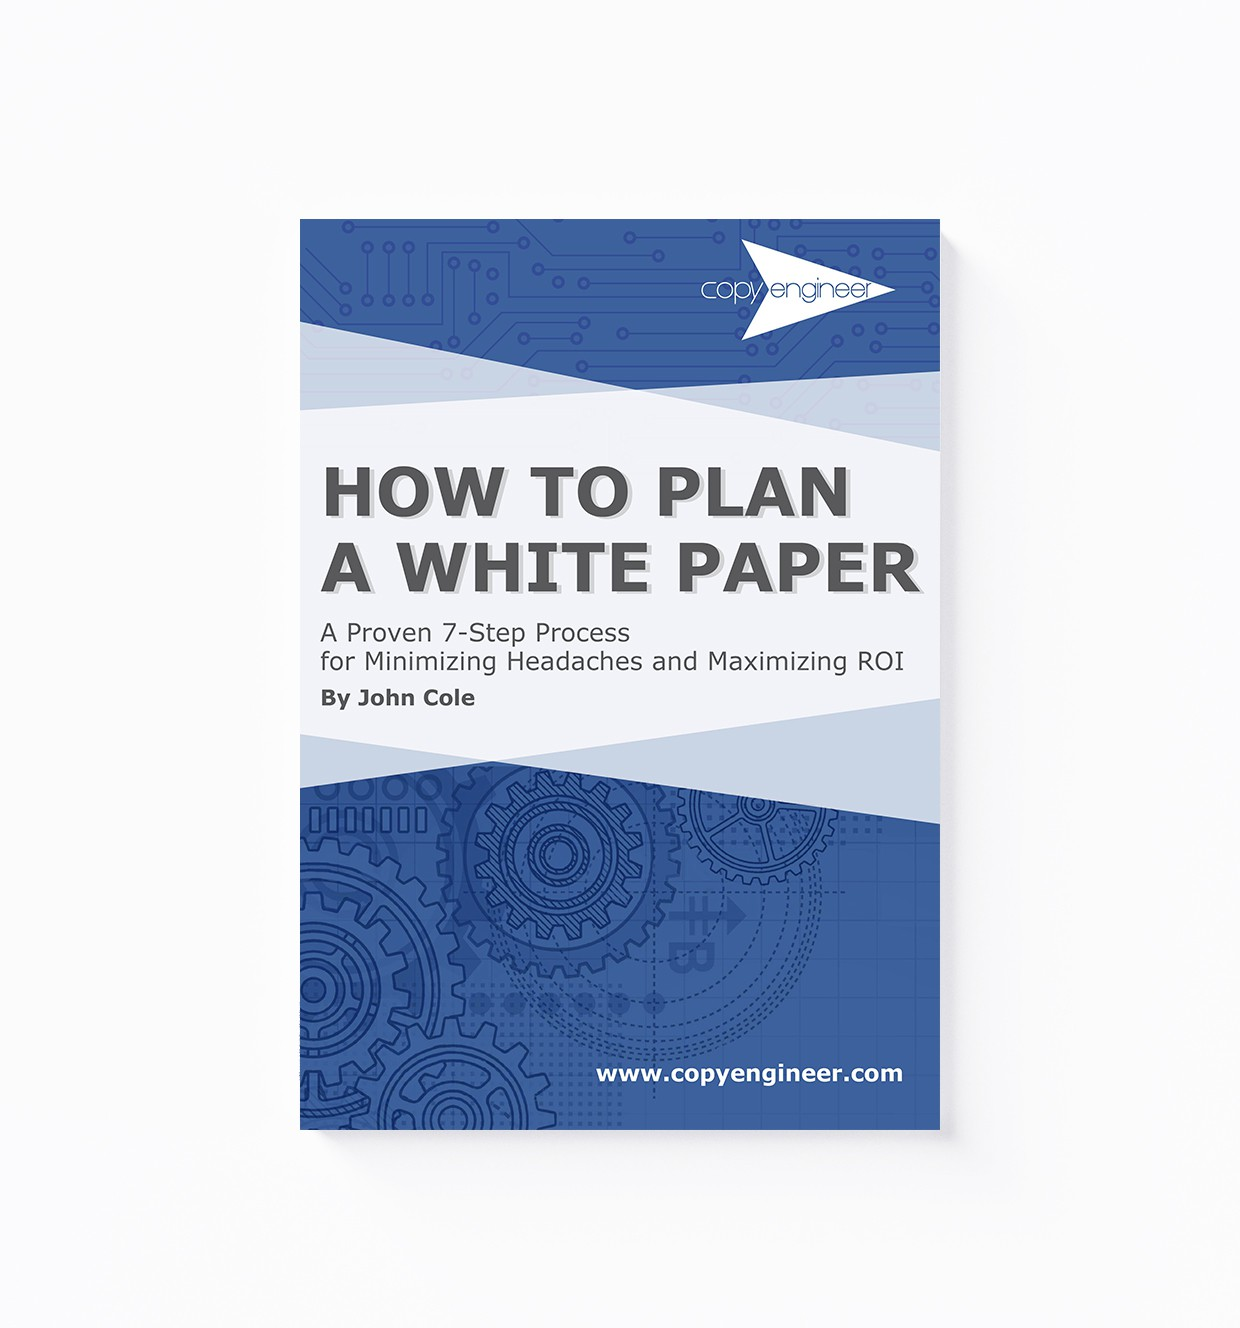 Make CopyEngineer's white paper beautiful and reader-friendly